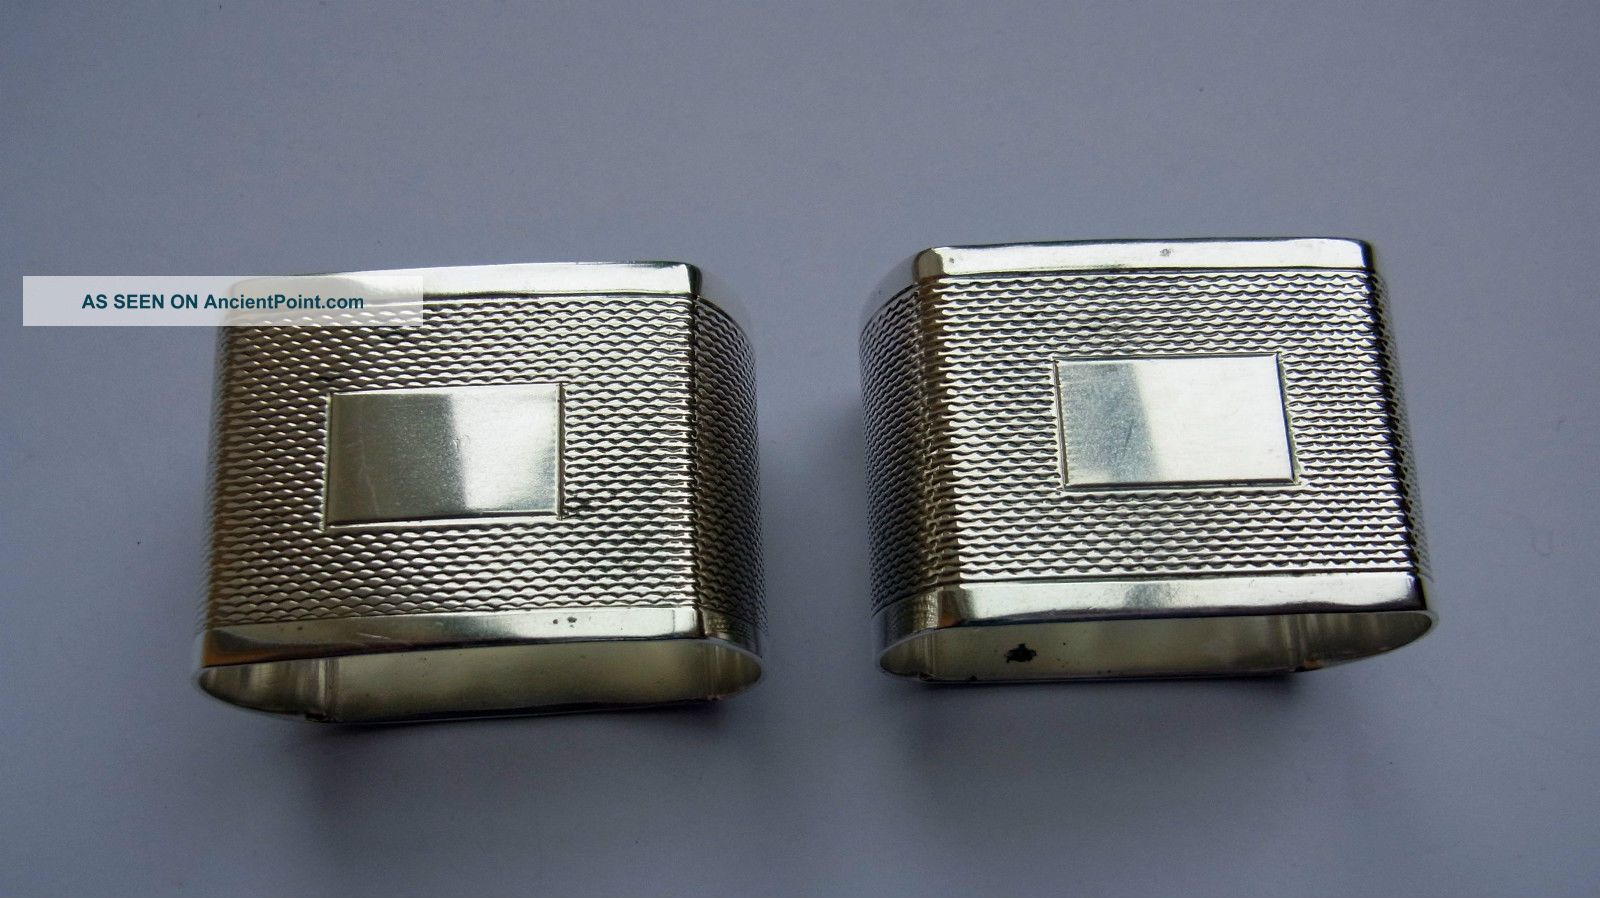 Vintage Sterling Silver Napkin Rings - Pair - Shefield 1956 - Engine Turned Napkin Rings & Clips photo